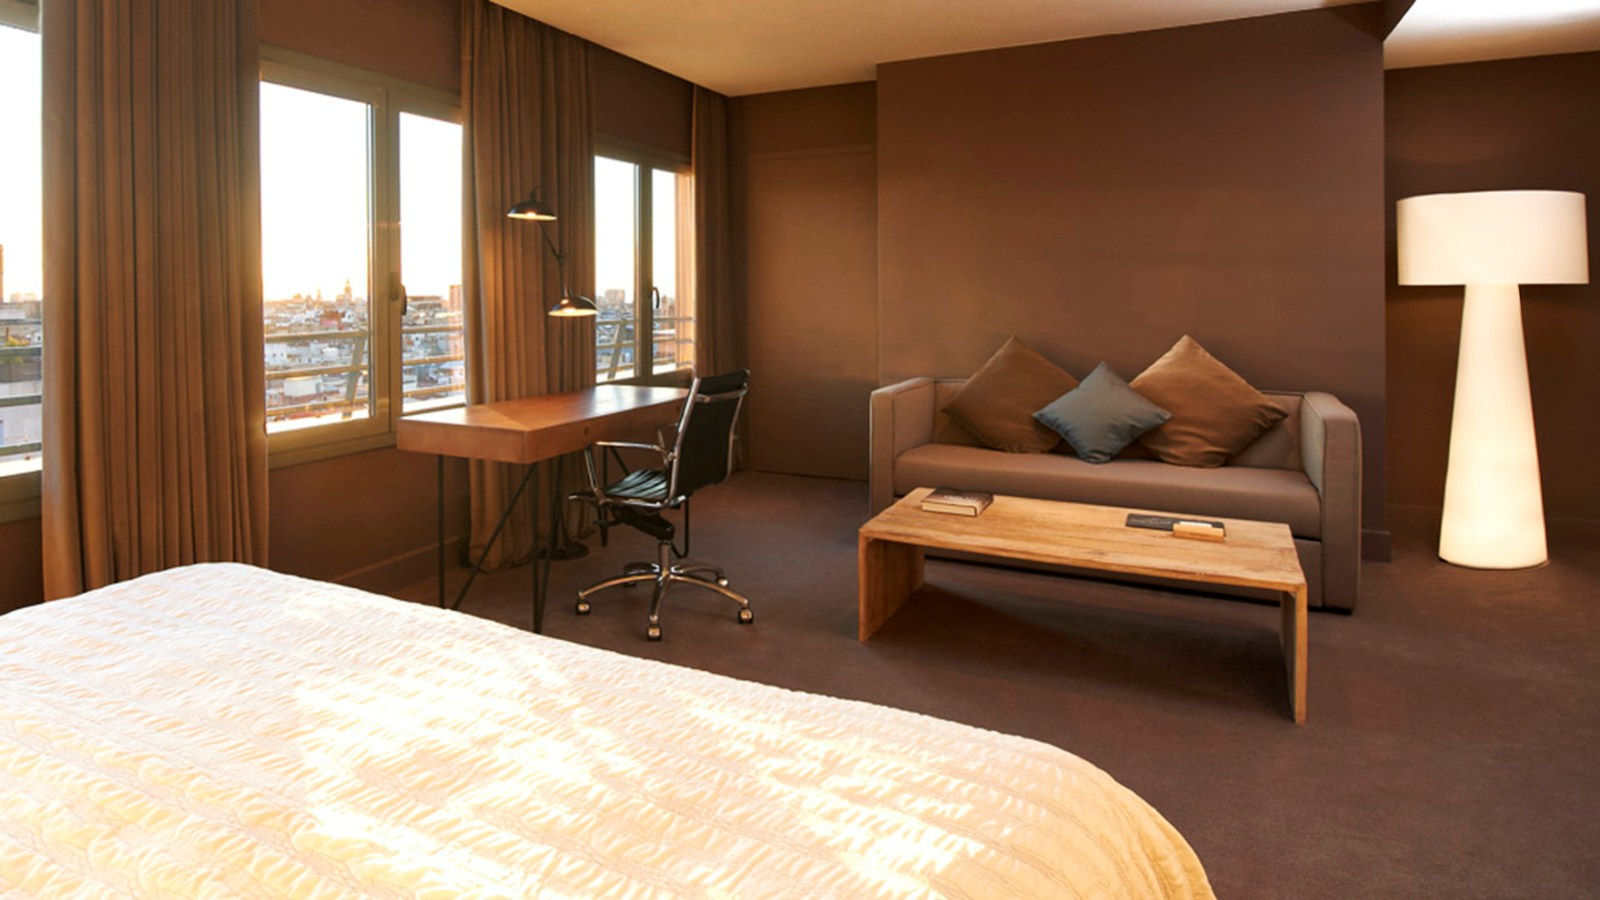 Junior Suite l Le Méridien Barcelona